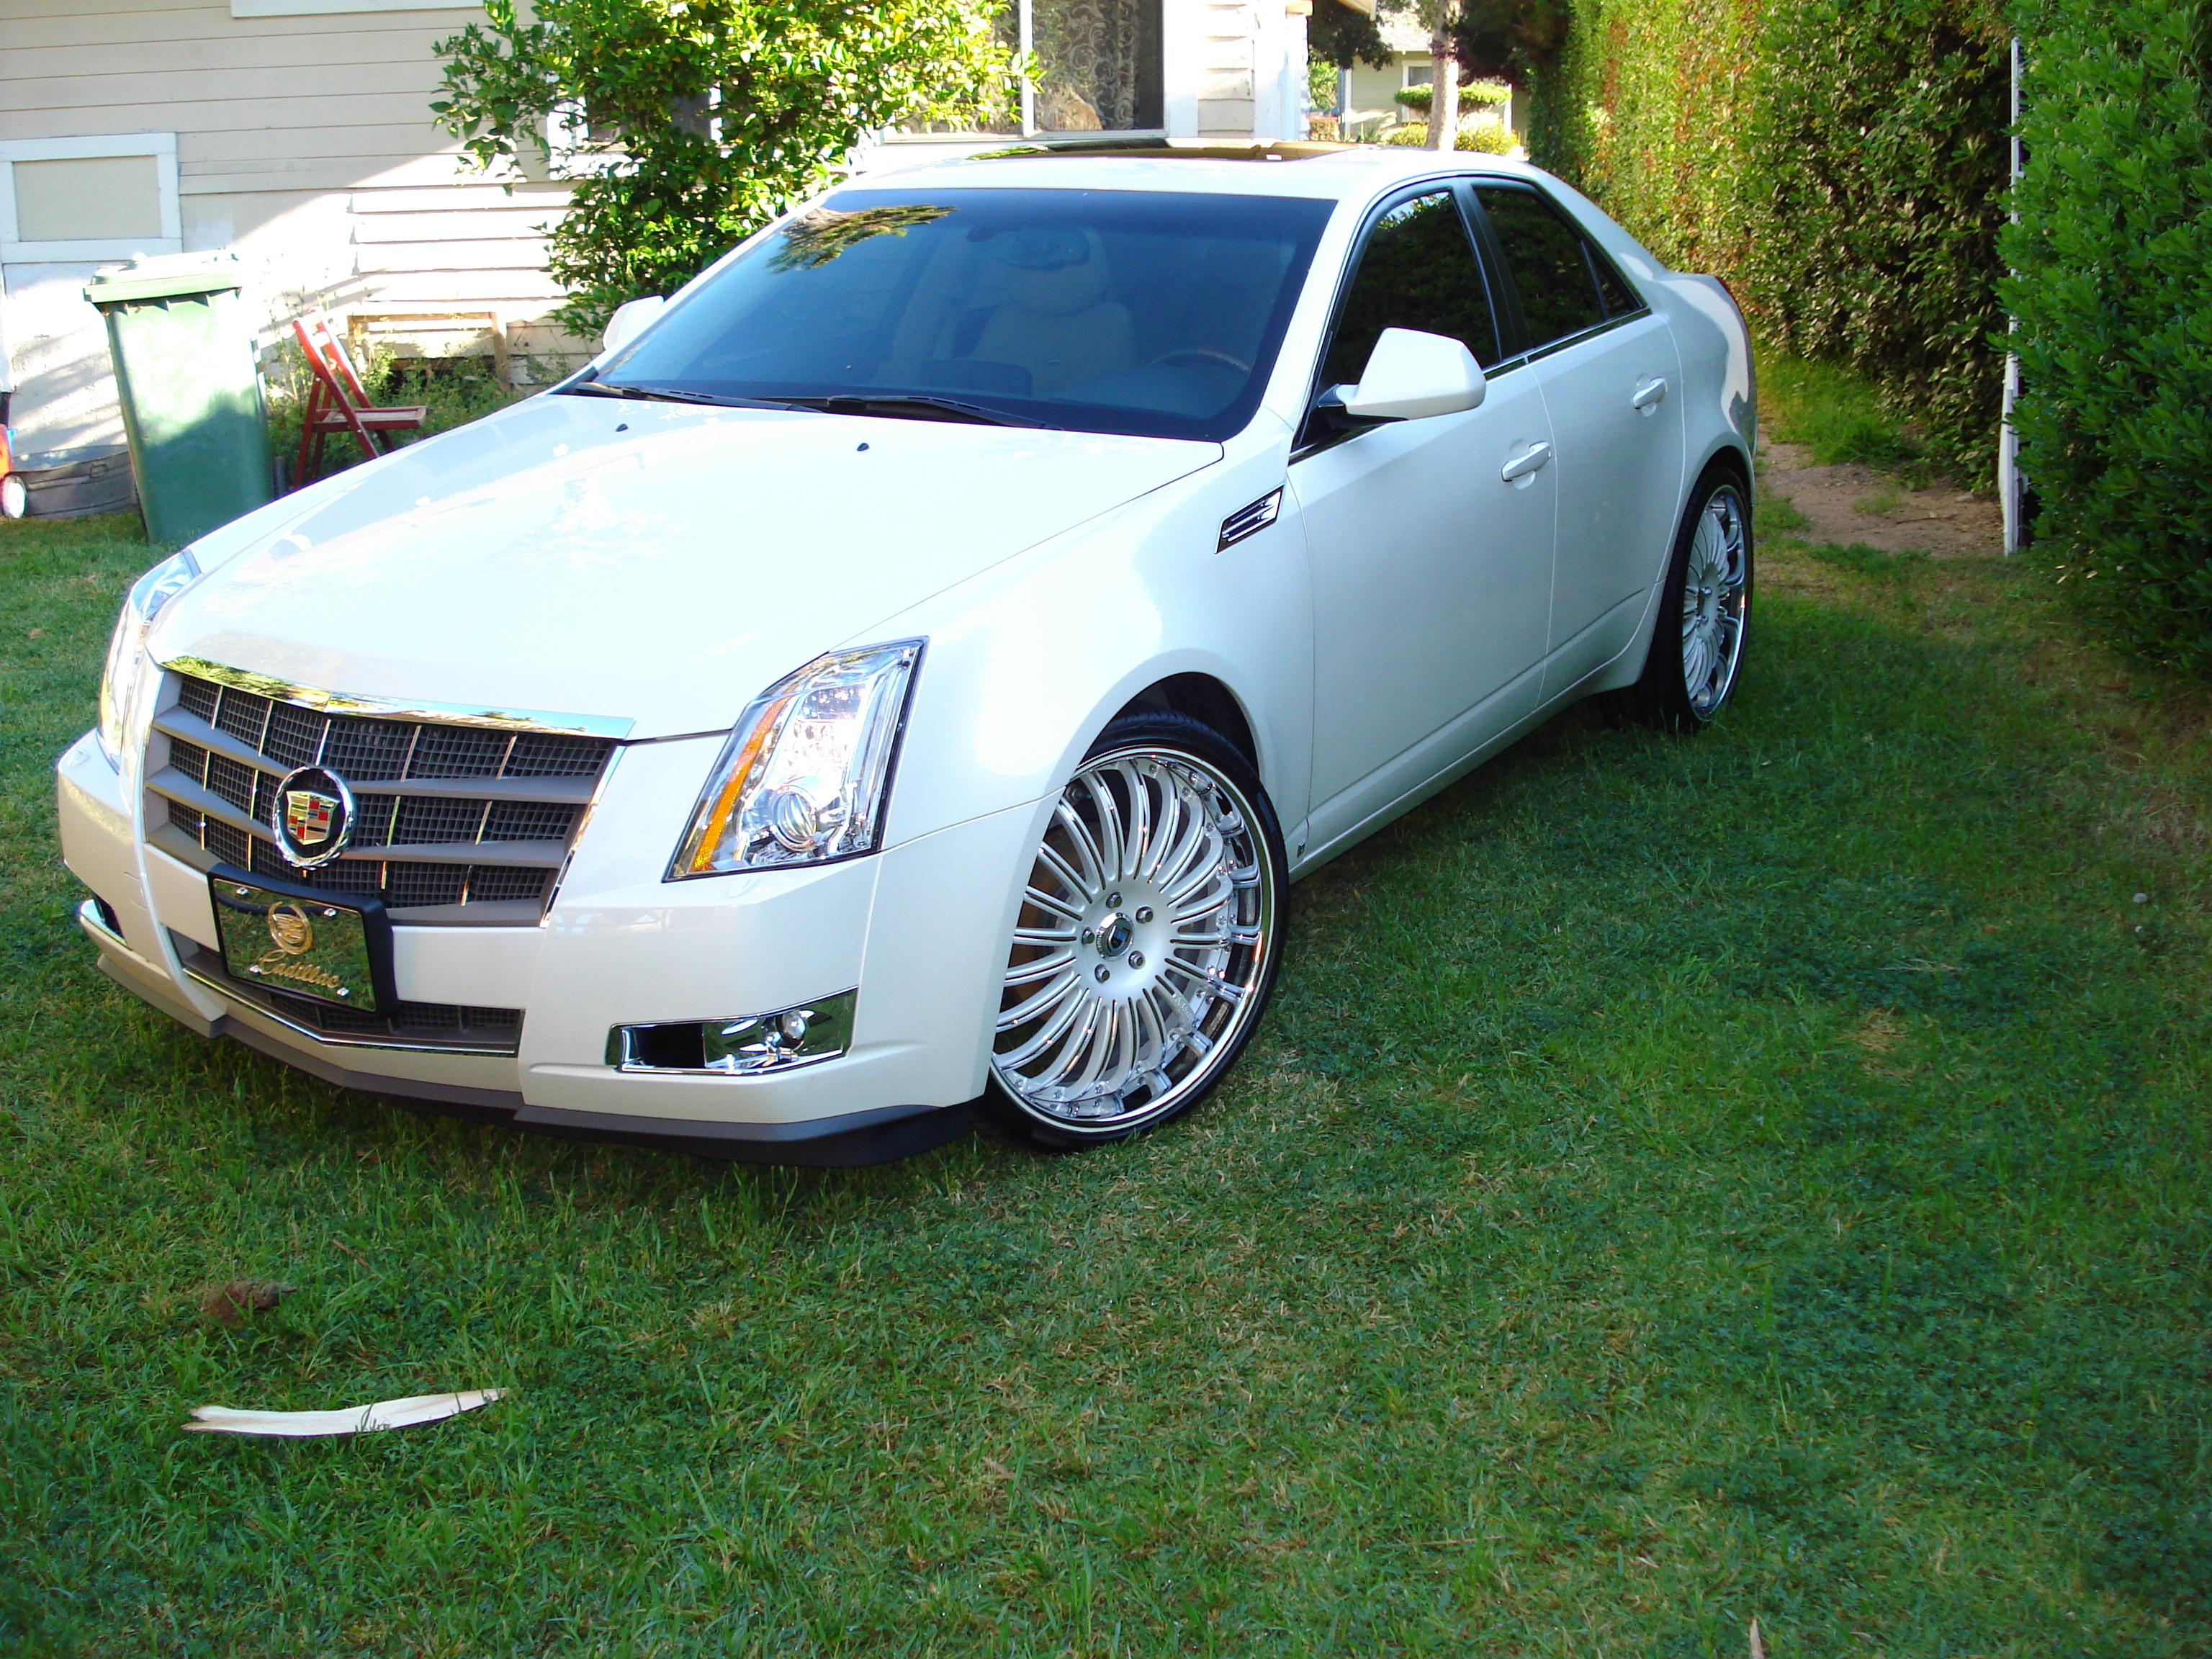 DIAMONDindaROUGH 2008 Cadillac CTS 12928156